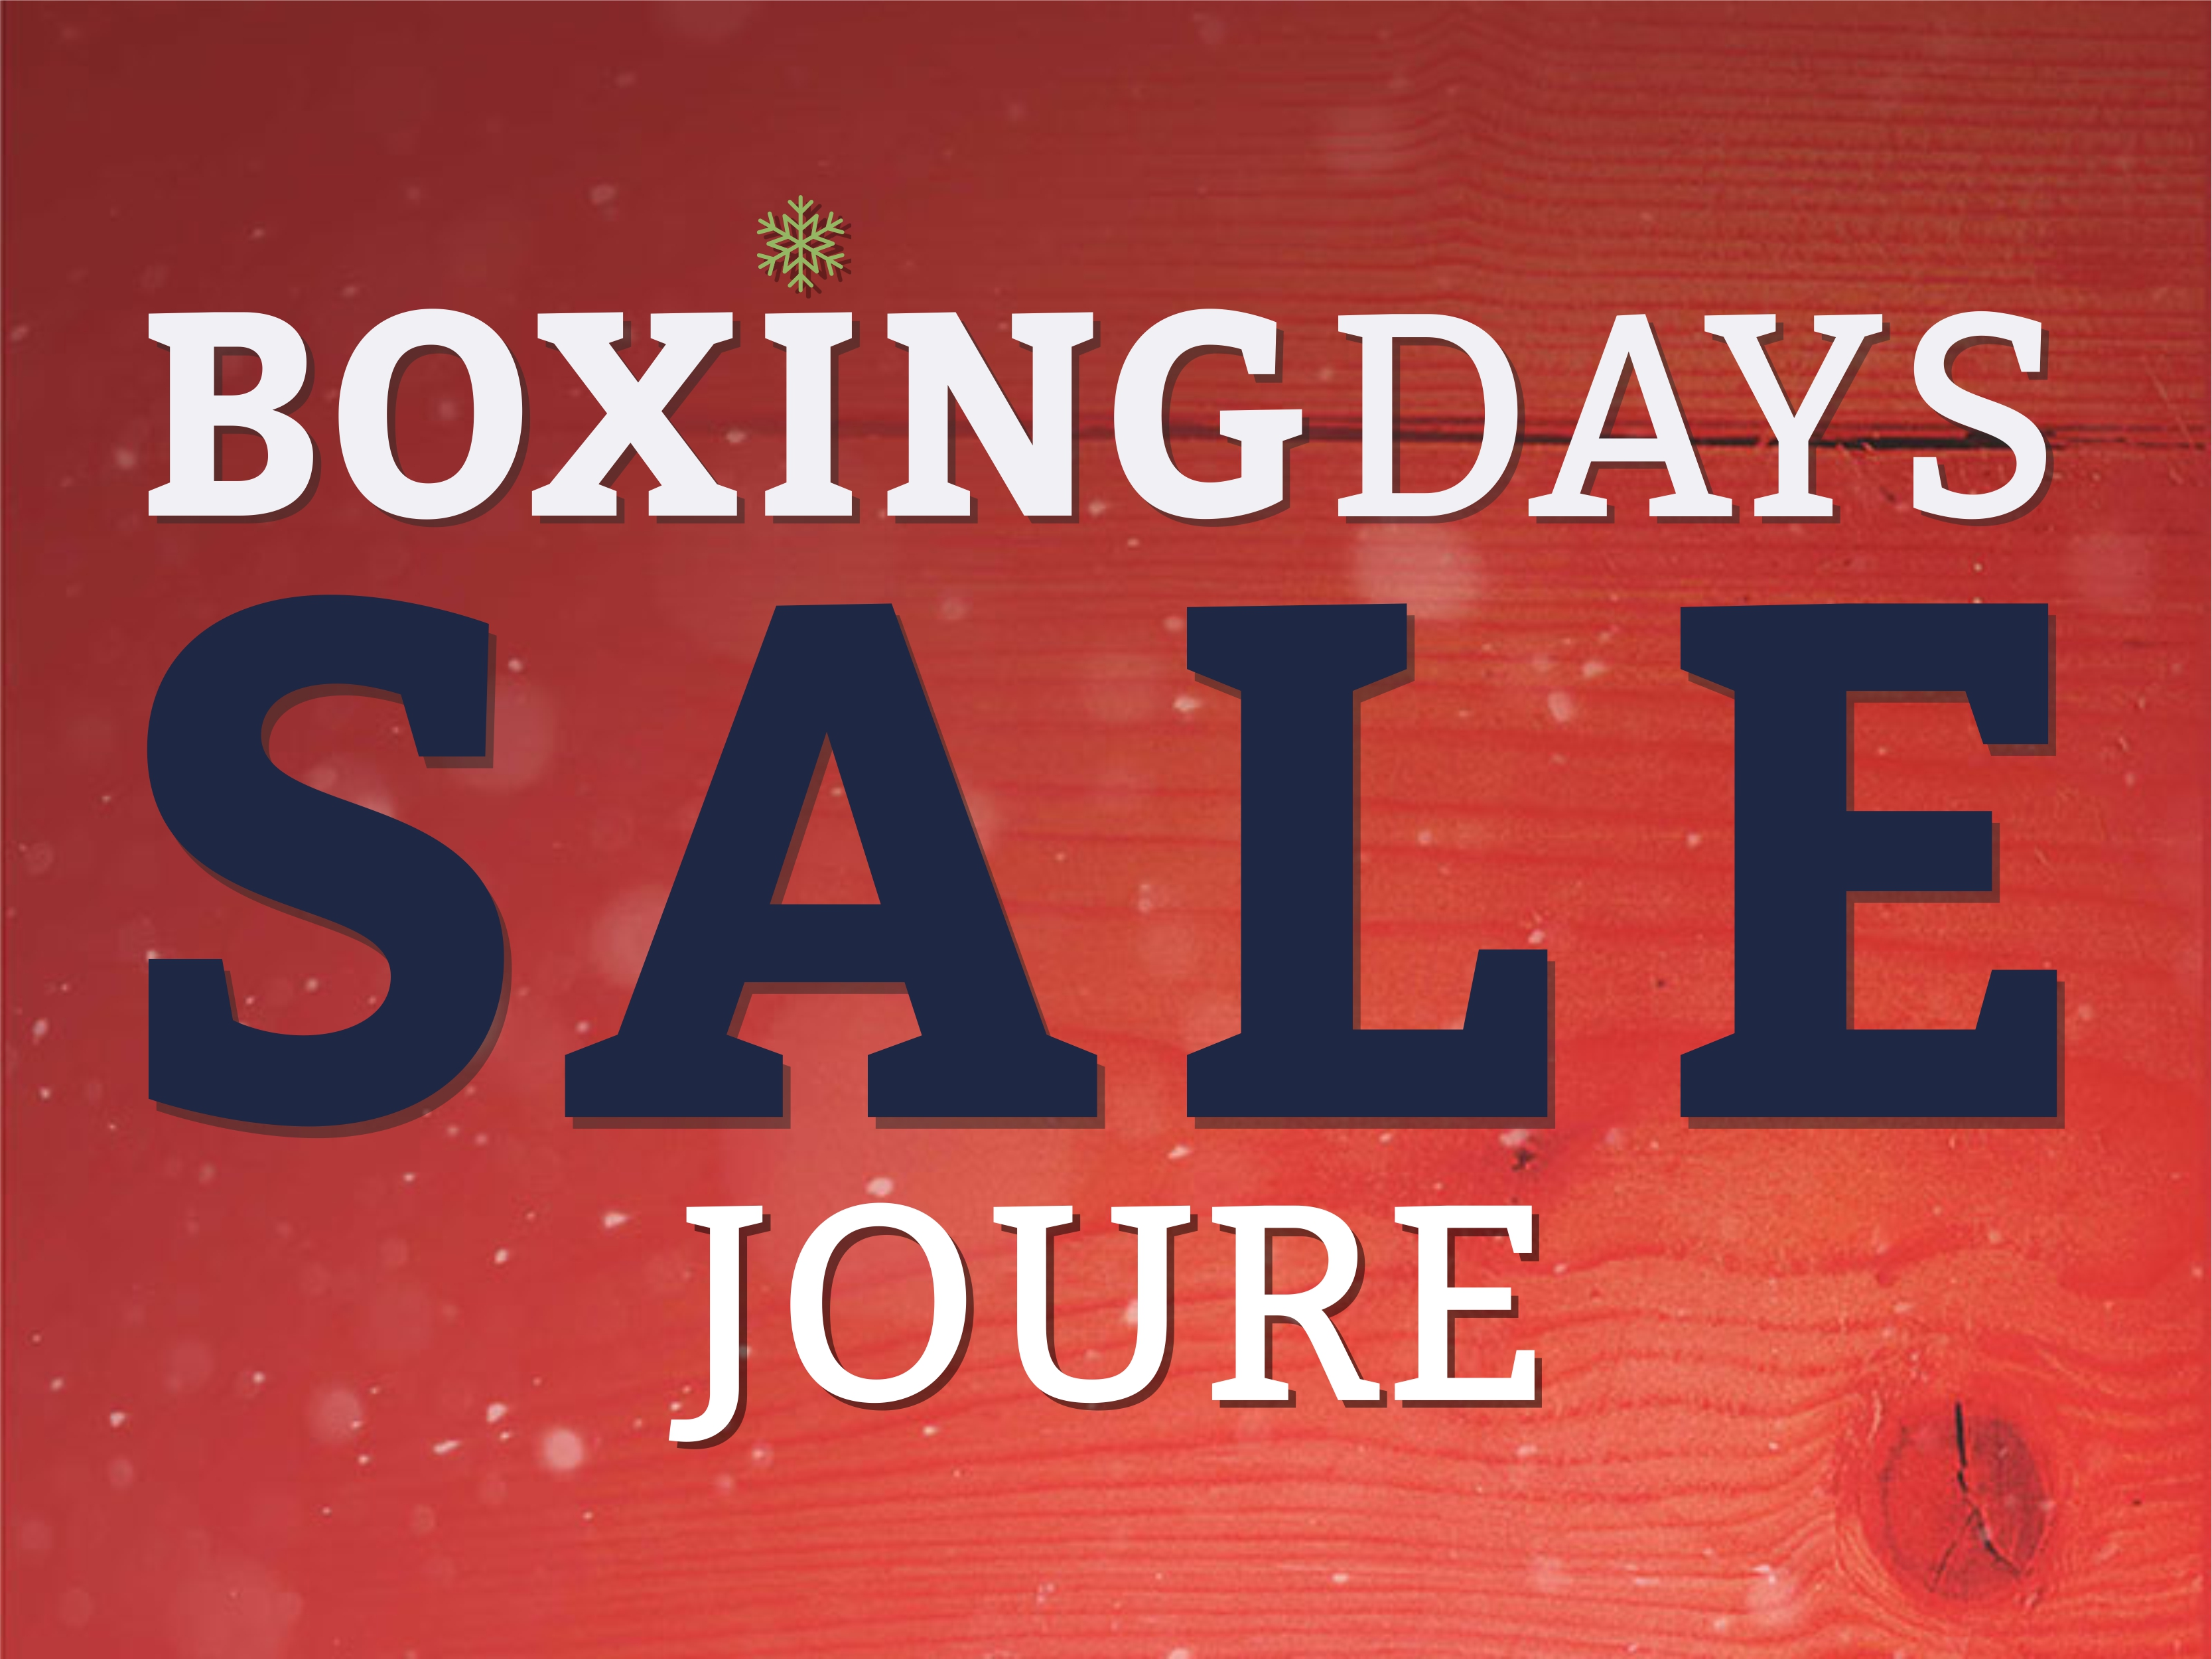 BOXING DAYS JOURE - 27, 28, 29 december